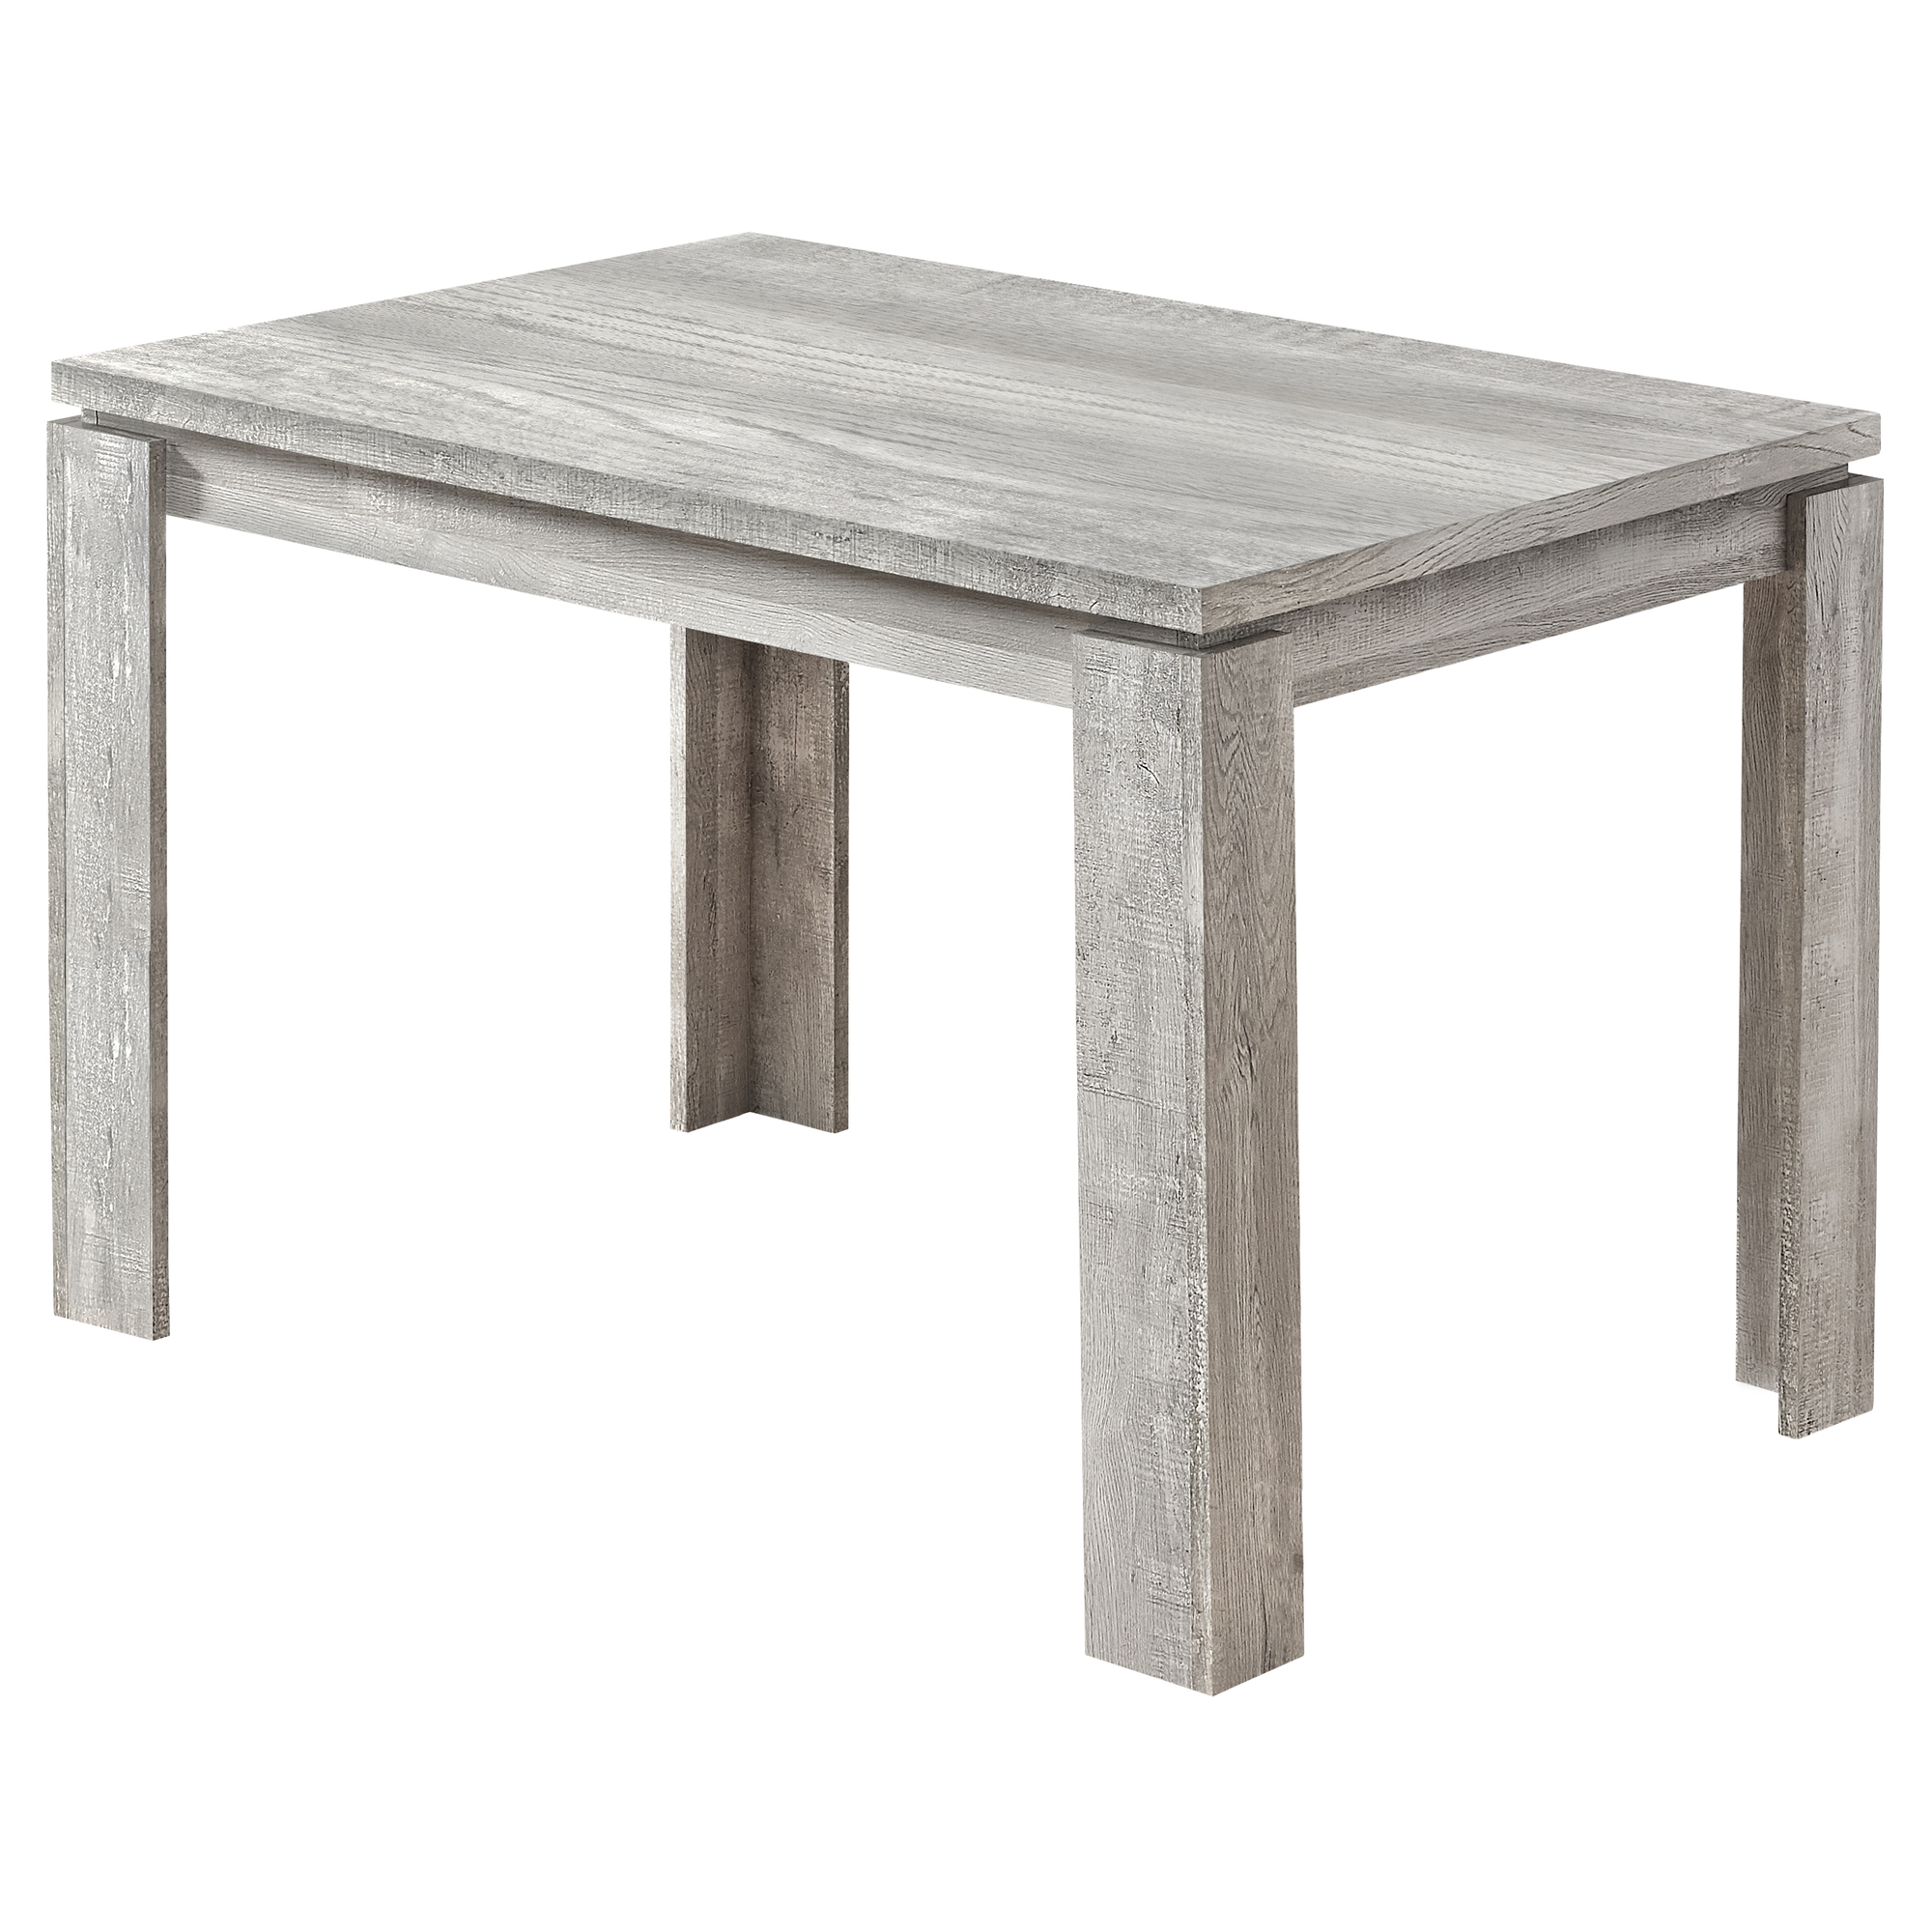 "DINING TABLE - 32""X 48"" / GREY RECLAIMED WOOD-LOOK"